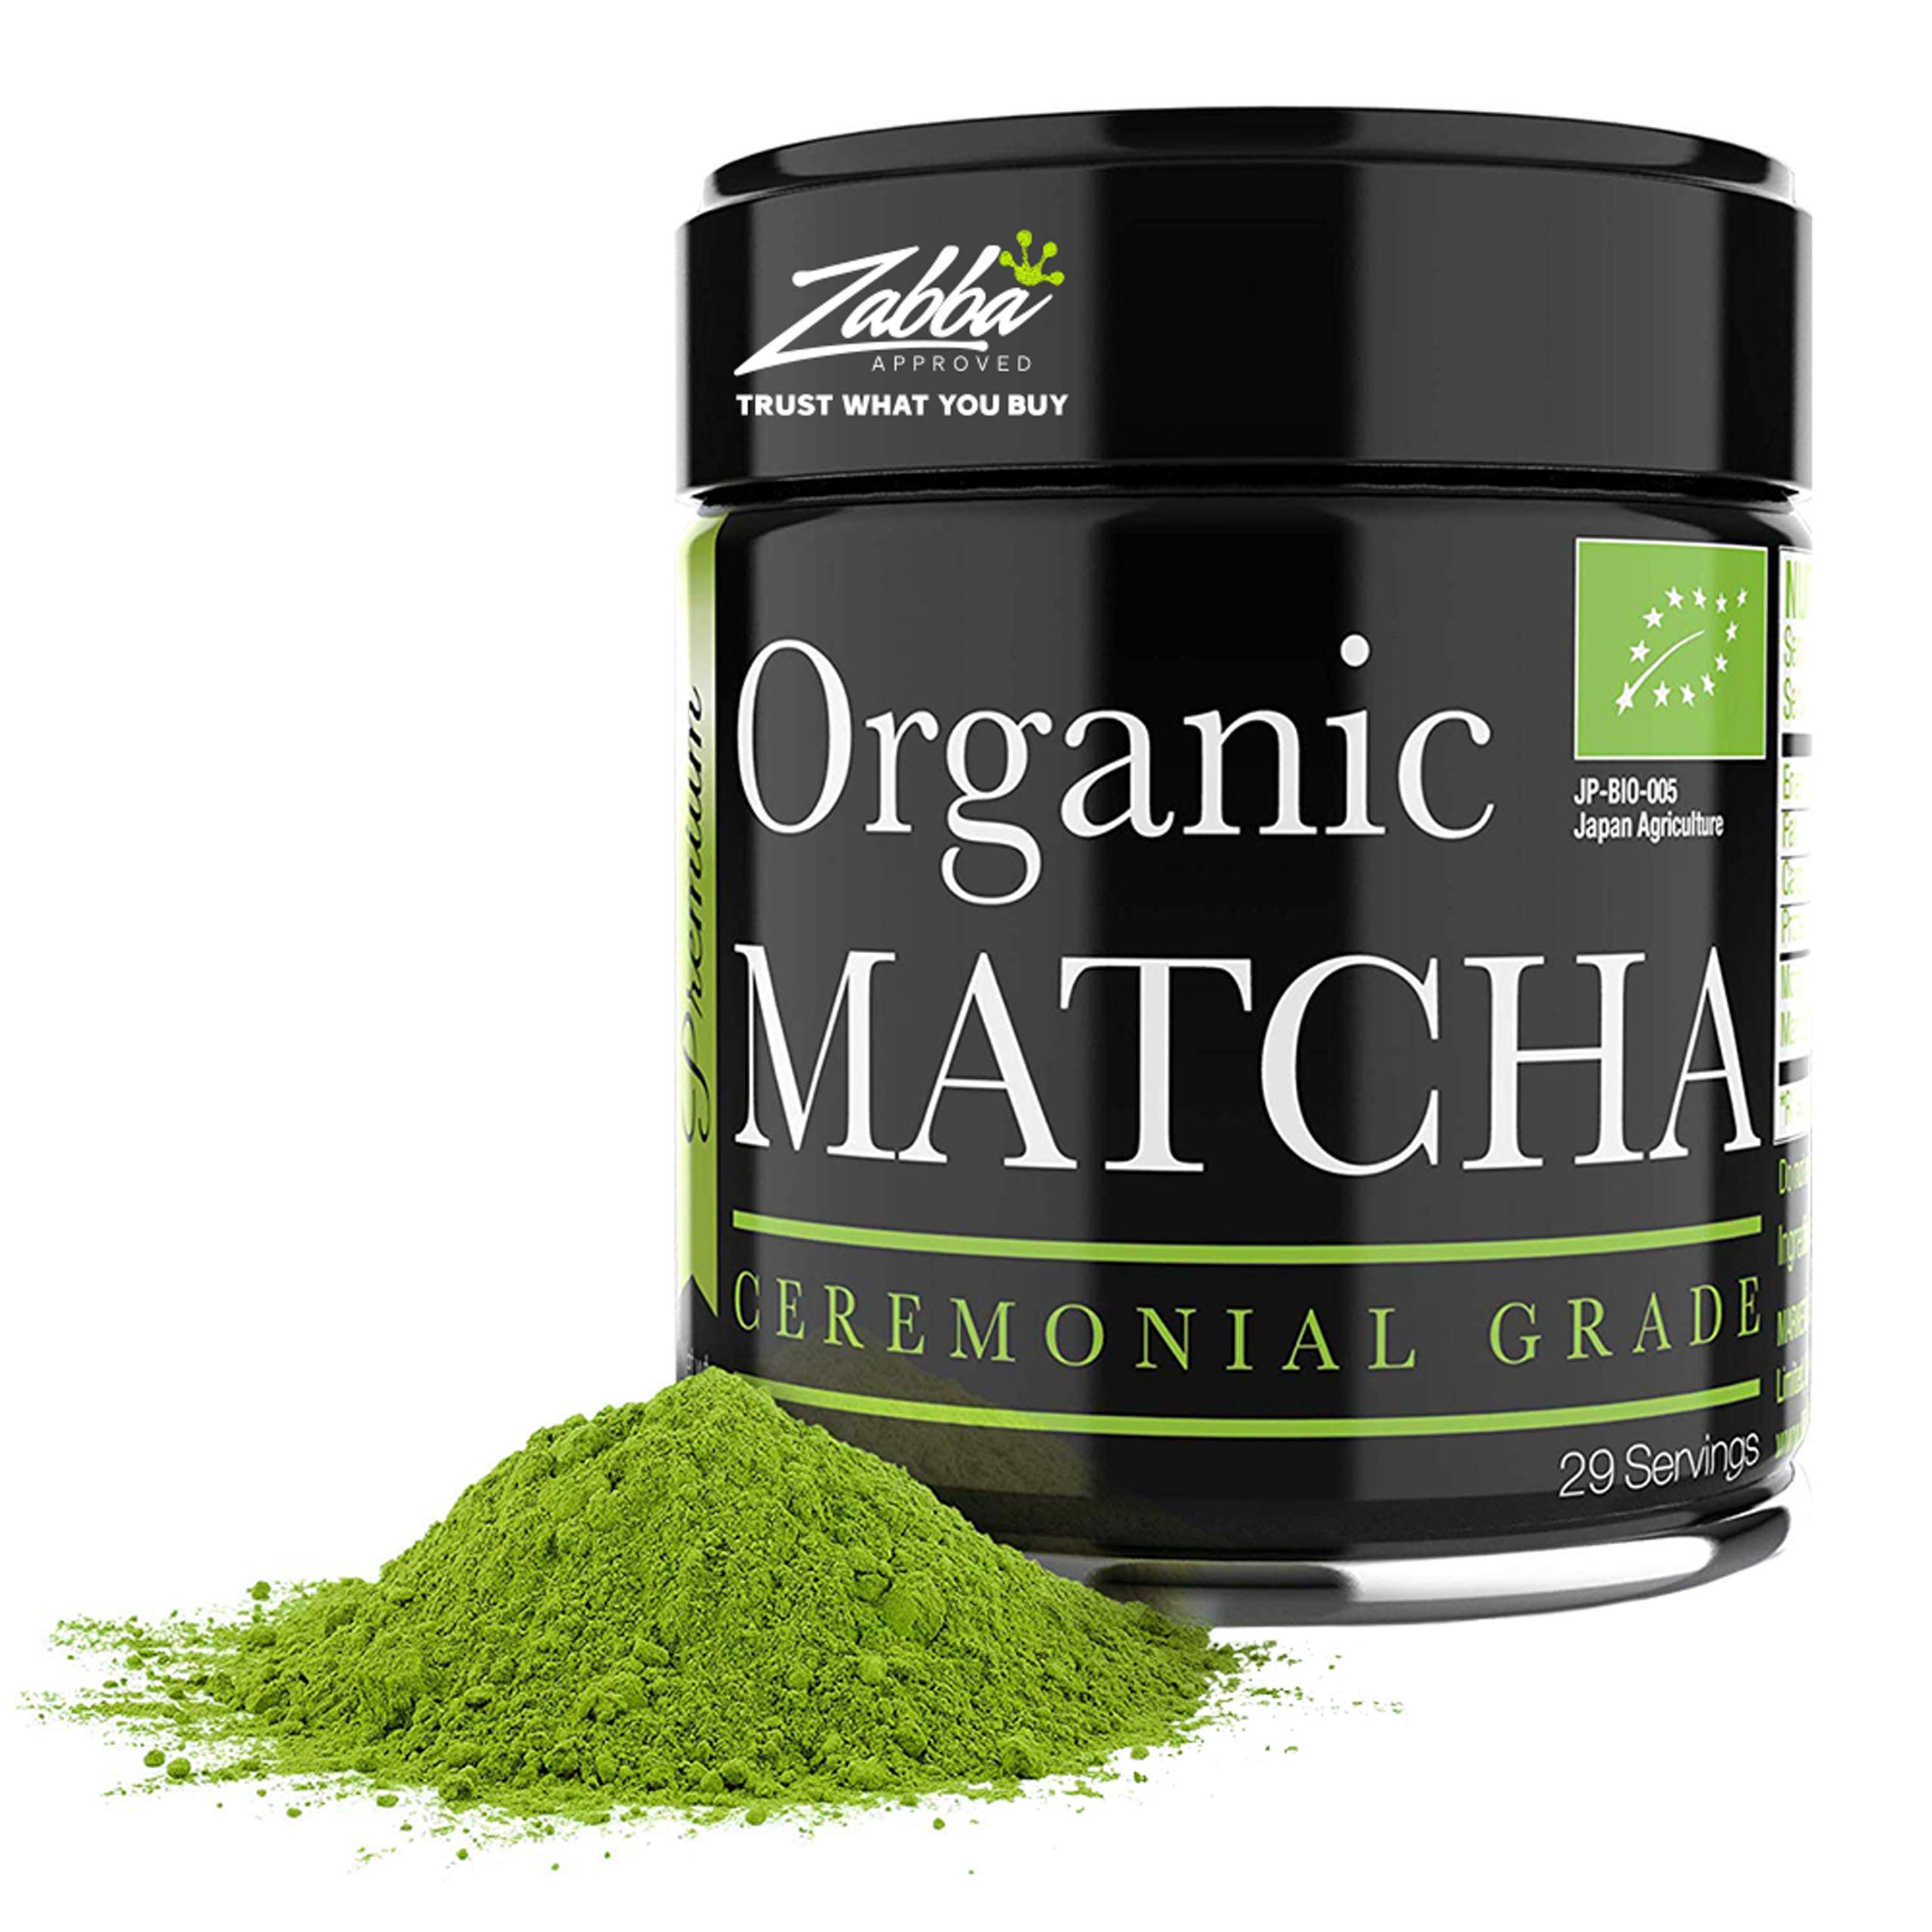 Ceremonial Matcha - Organic Matcha Green Tea Powder - 1oz - Highest Quality Japanese Matcha - Perfect for Tea Ceremonies and Holistic Detox - Made from 100% Organic Tea Leaves - Boosts Vitality